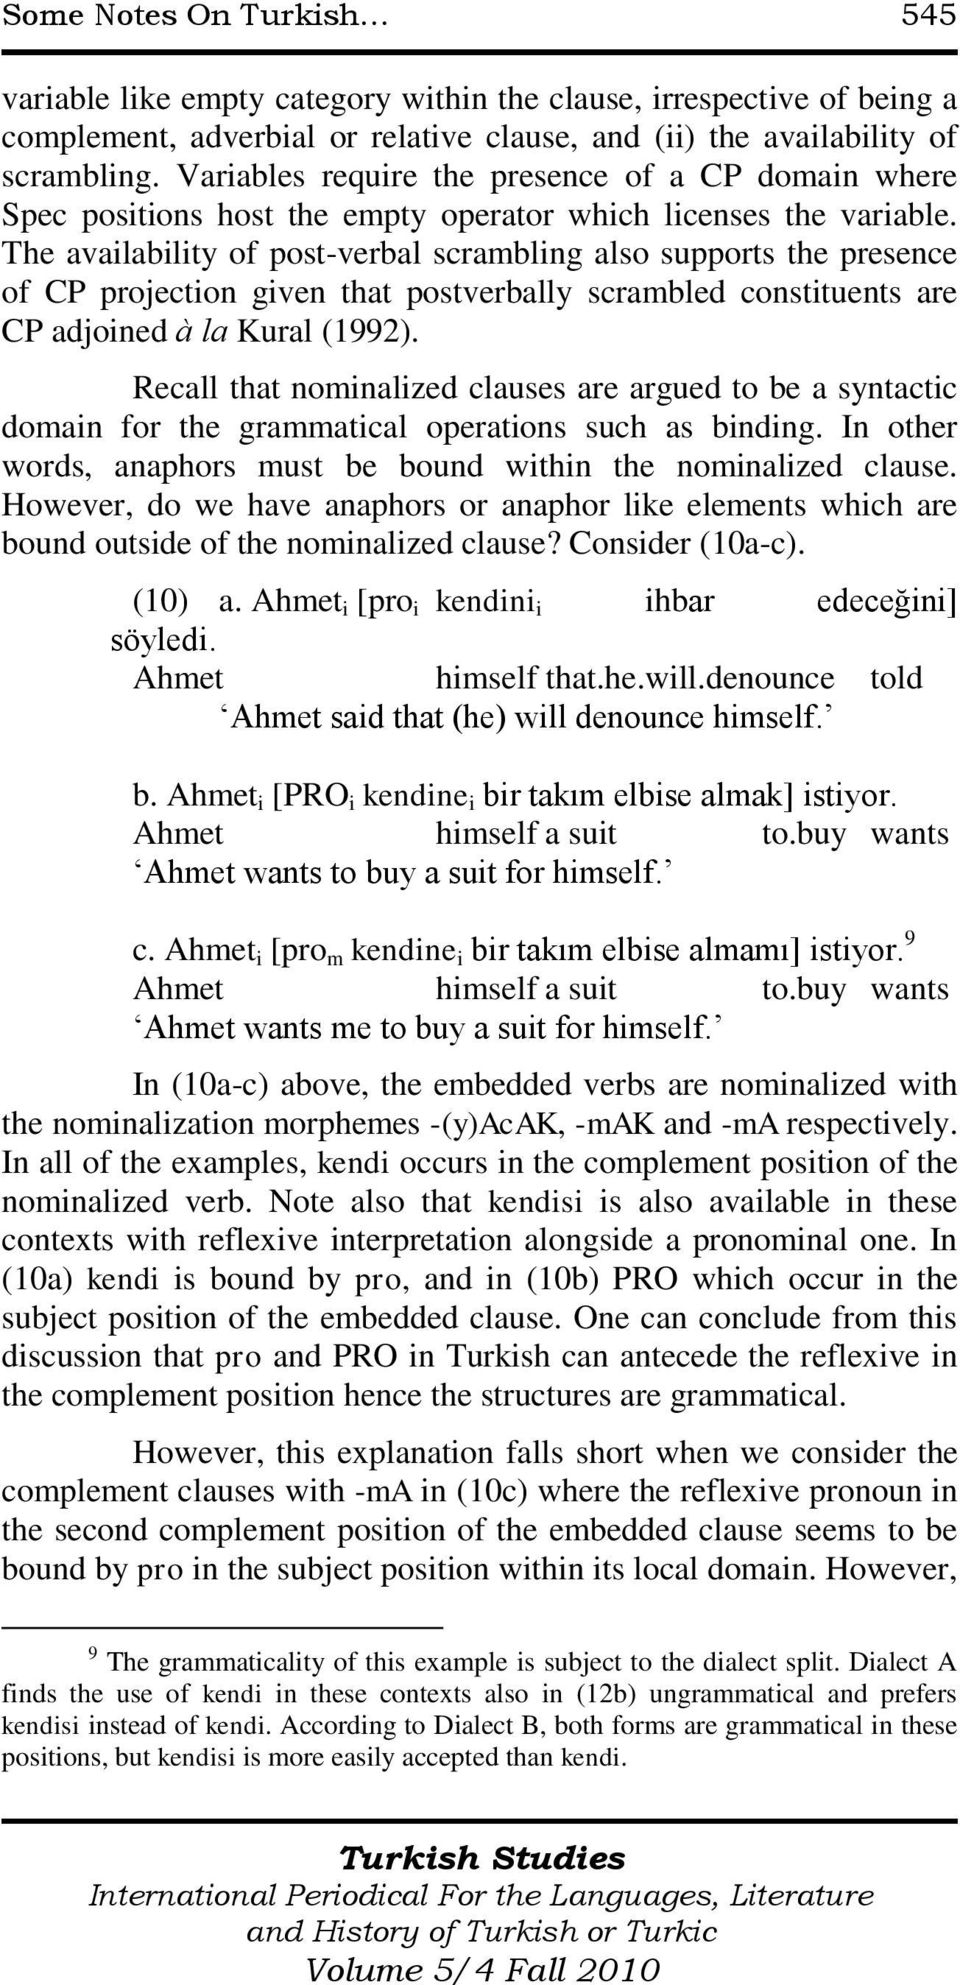 The availability of post-verbal scrambling also supports the presence of CP projection given that postverbally scrambled constituents are CP adjoined à la Kural (1992).